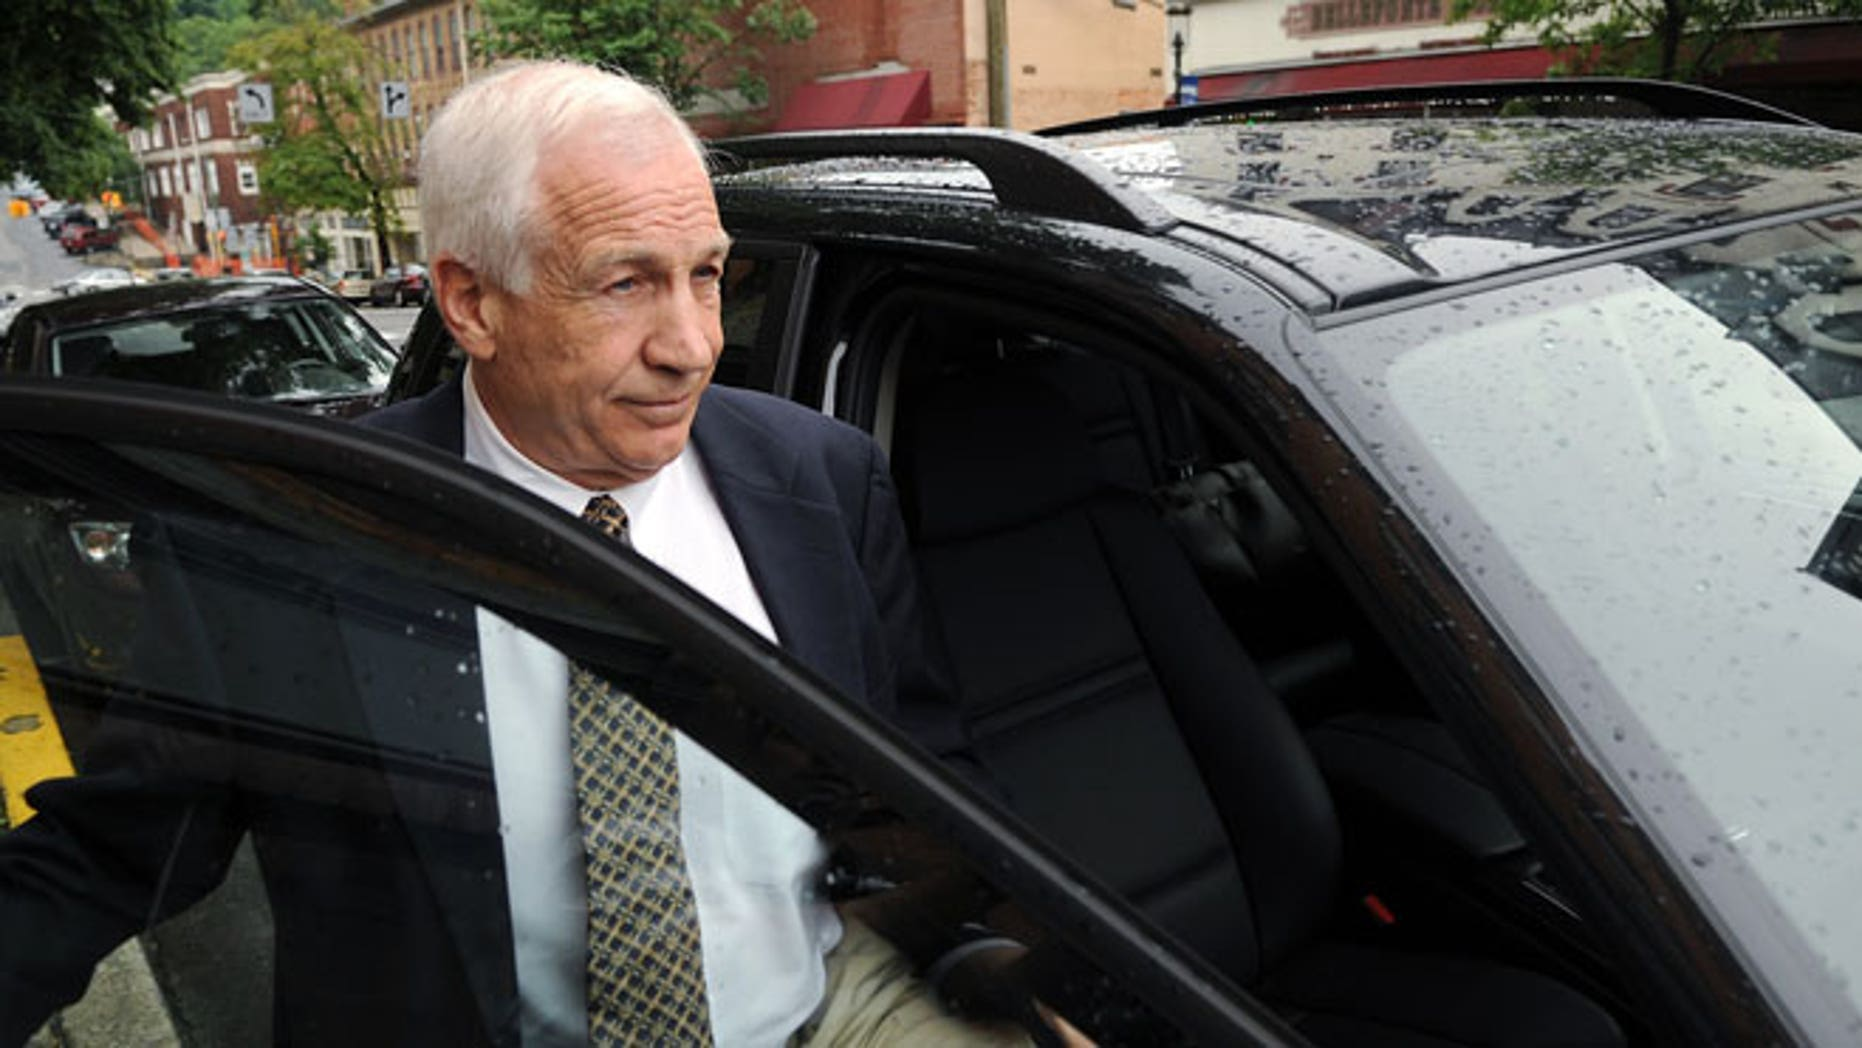 In a Tuesday, May 29, 2012 file photo, Jerry Sandusky gets into his attorney Joe Amendola's car near the Centre County Courthouse Annex in Bellefonte, Pa.